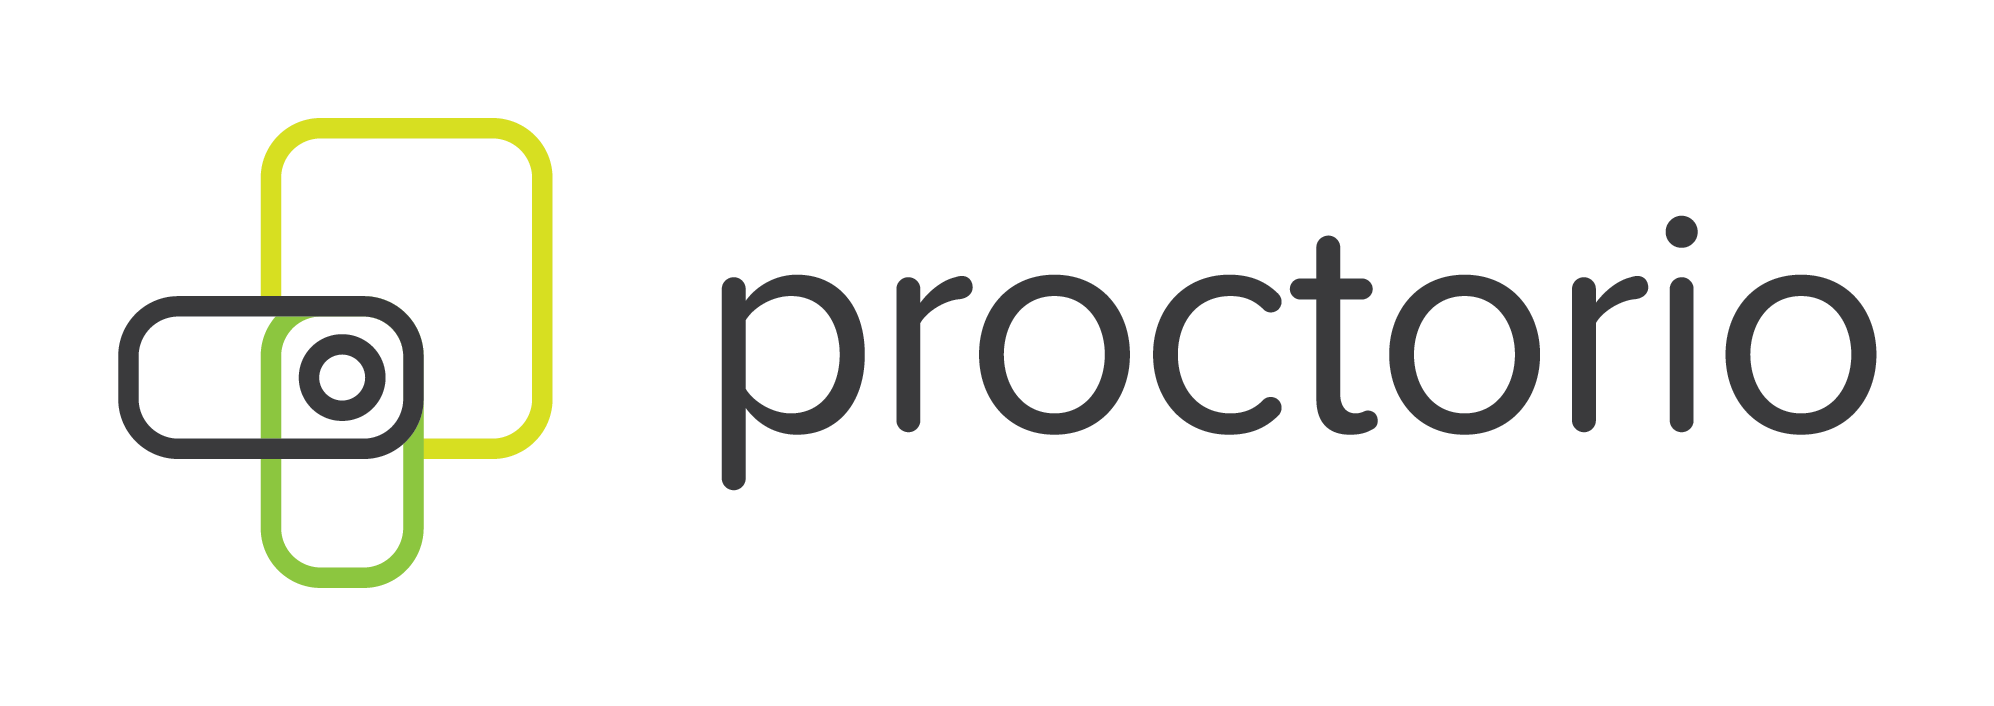 Proctorio at UVU | Office of Teaching and Learning | Office